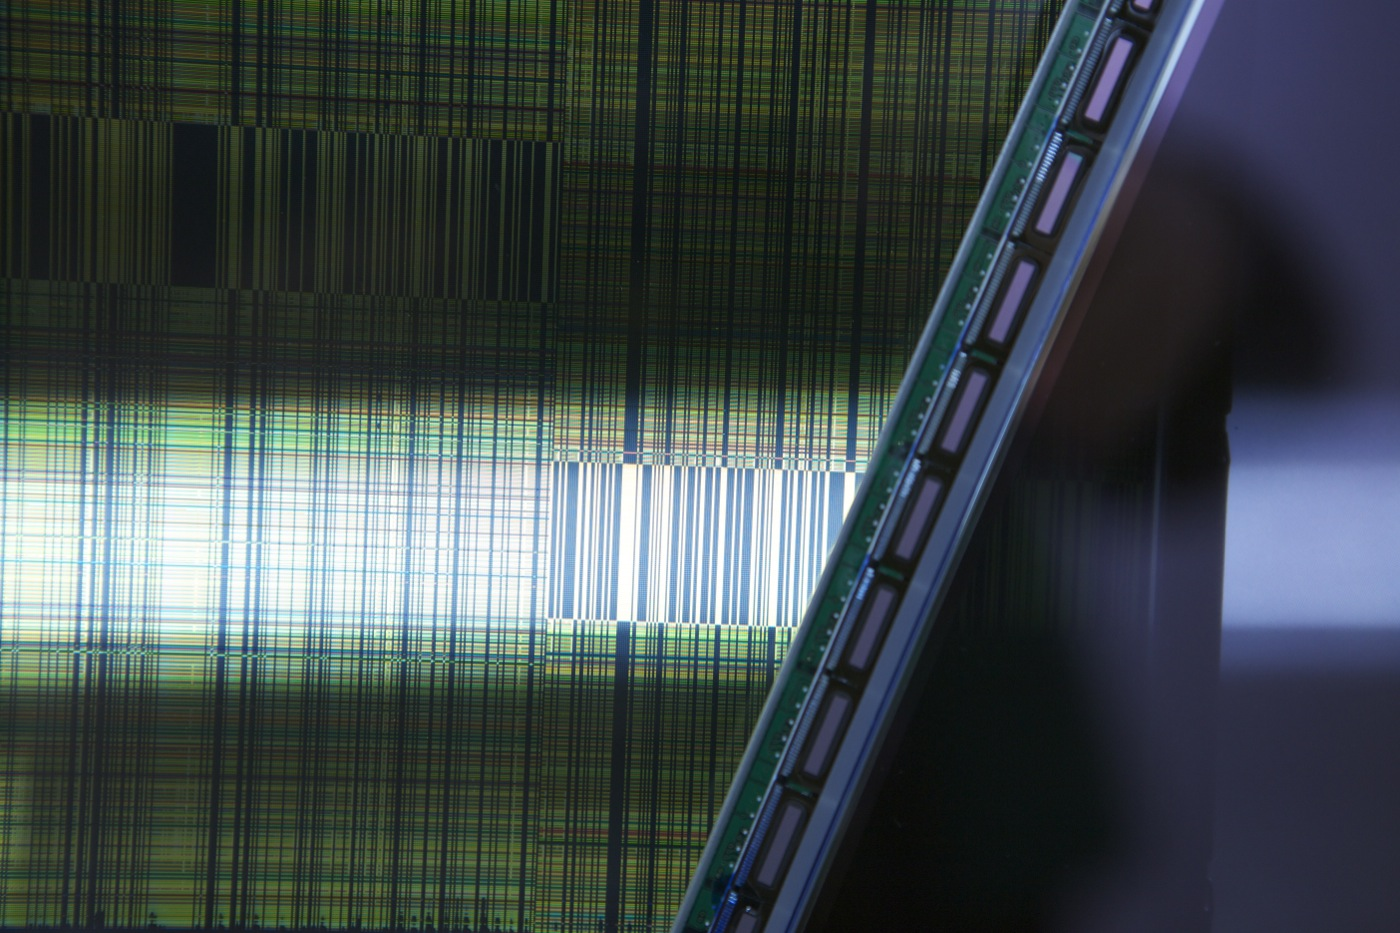 LCD glitch modules, installation detail, photo by jamie allen